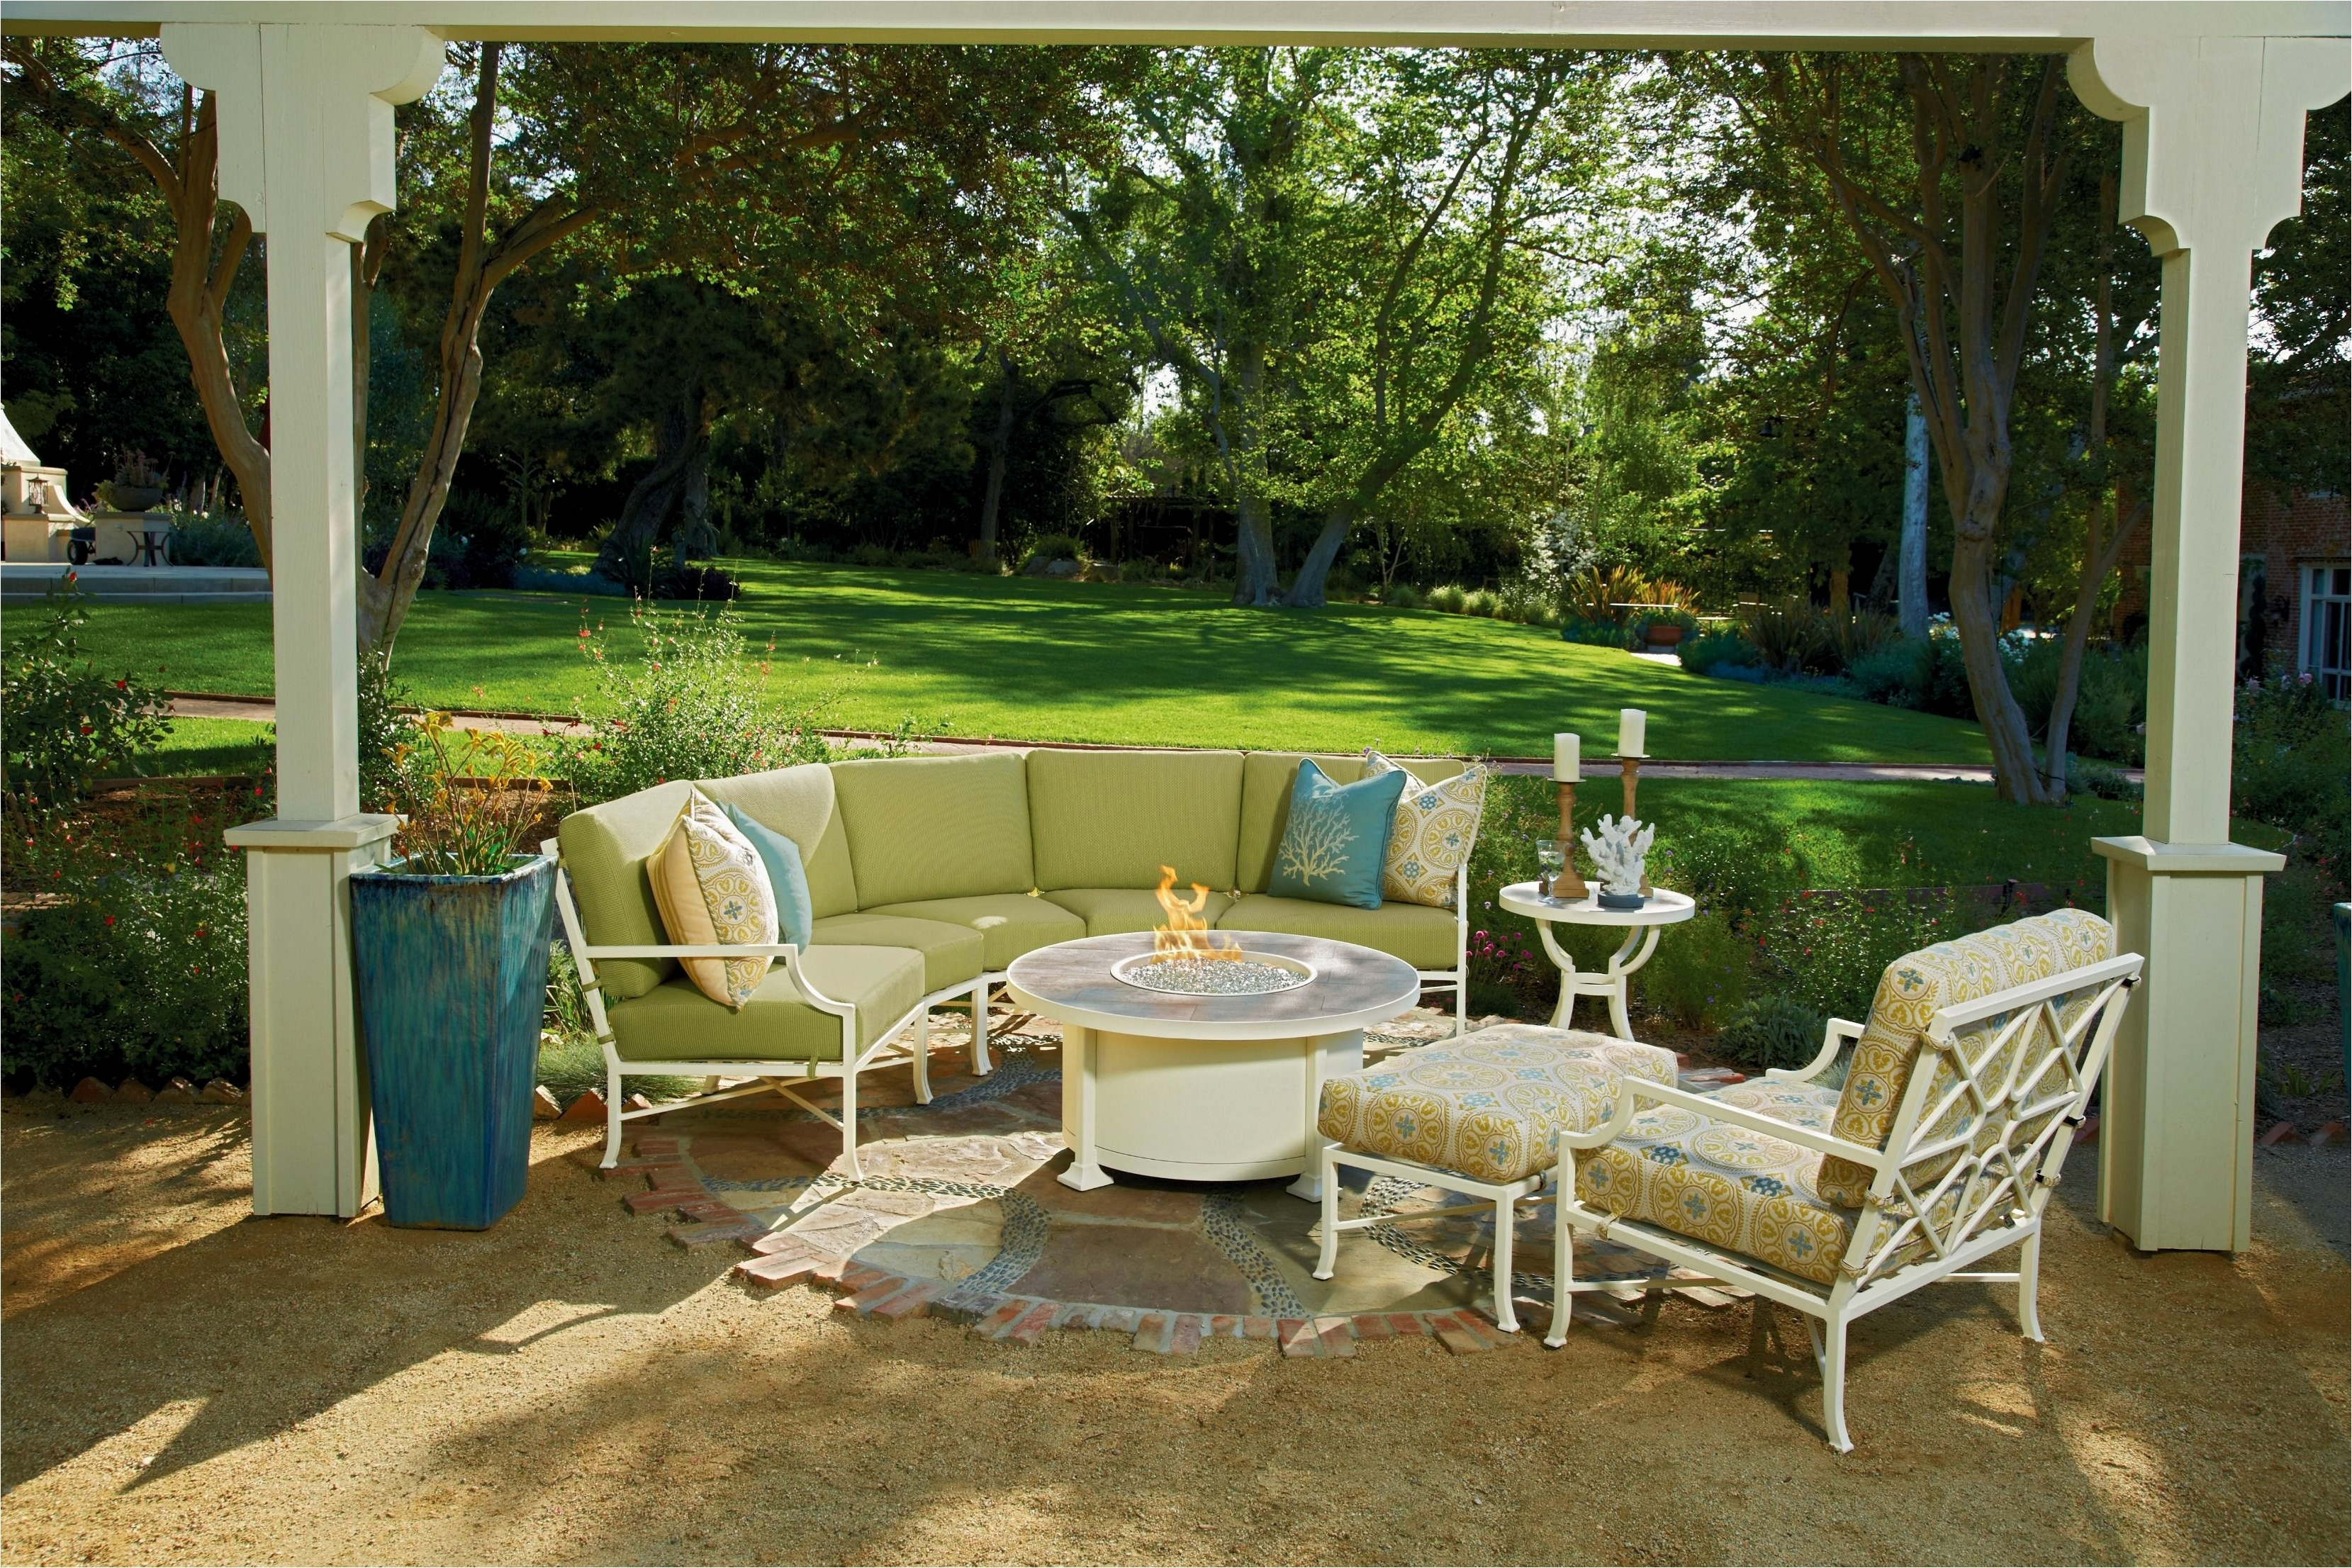 Most Recent Kohl's Patio Conversation Sets In Kohls Patio Umbrellas Best Of Kohl S Patio Furniture Sets Image (View 8 of 15)